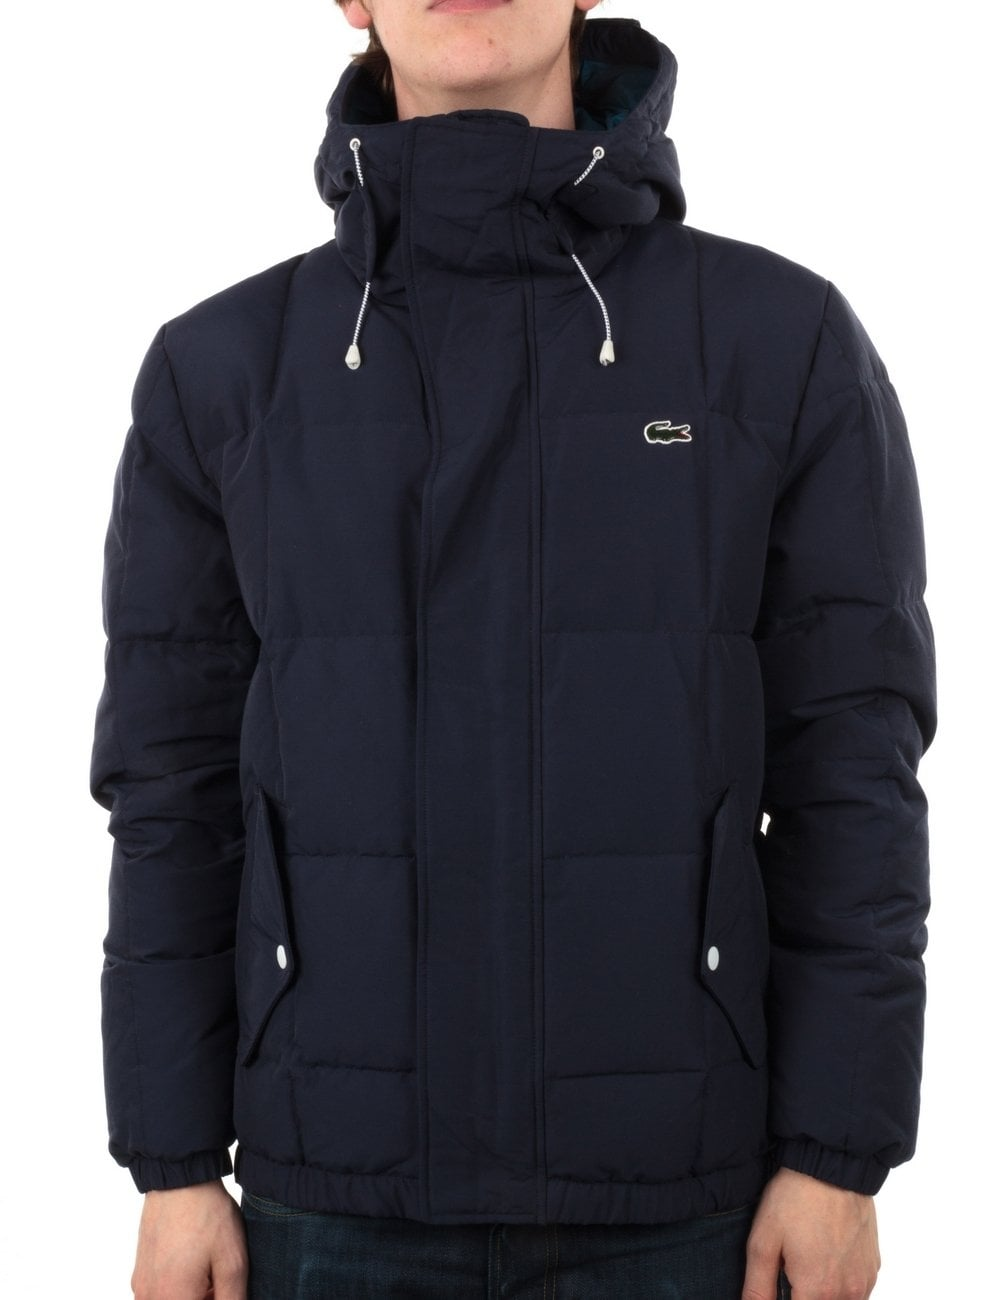 lacoste live quilted jacket navy clothing from fat buddha store uk. Black Bedroom Furniture Sets. Home Design Ideas